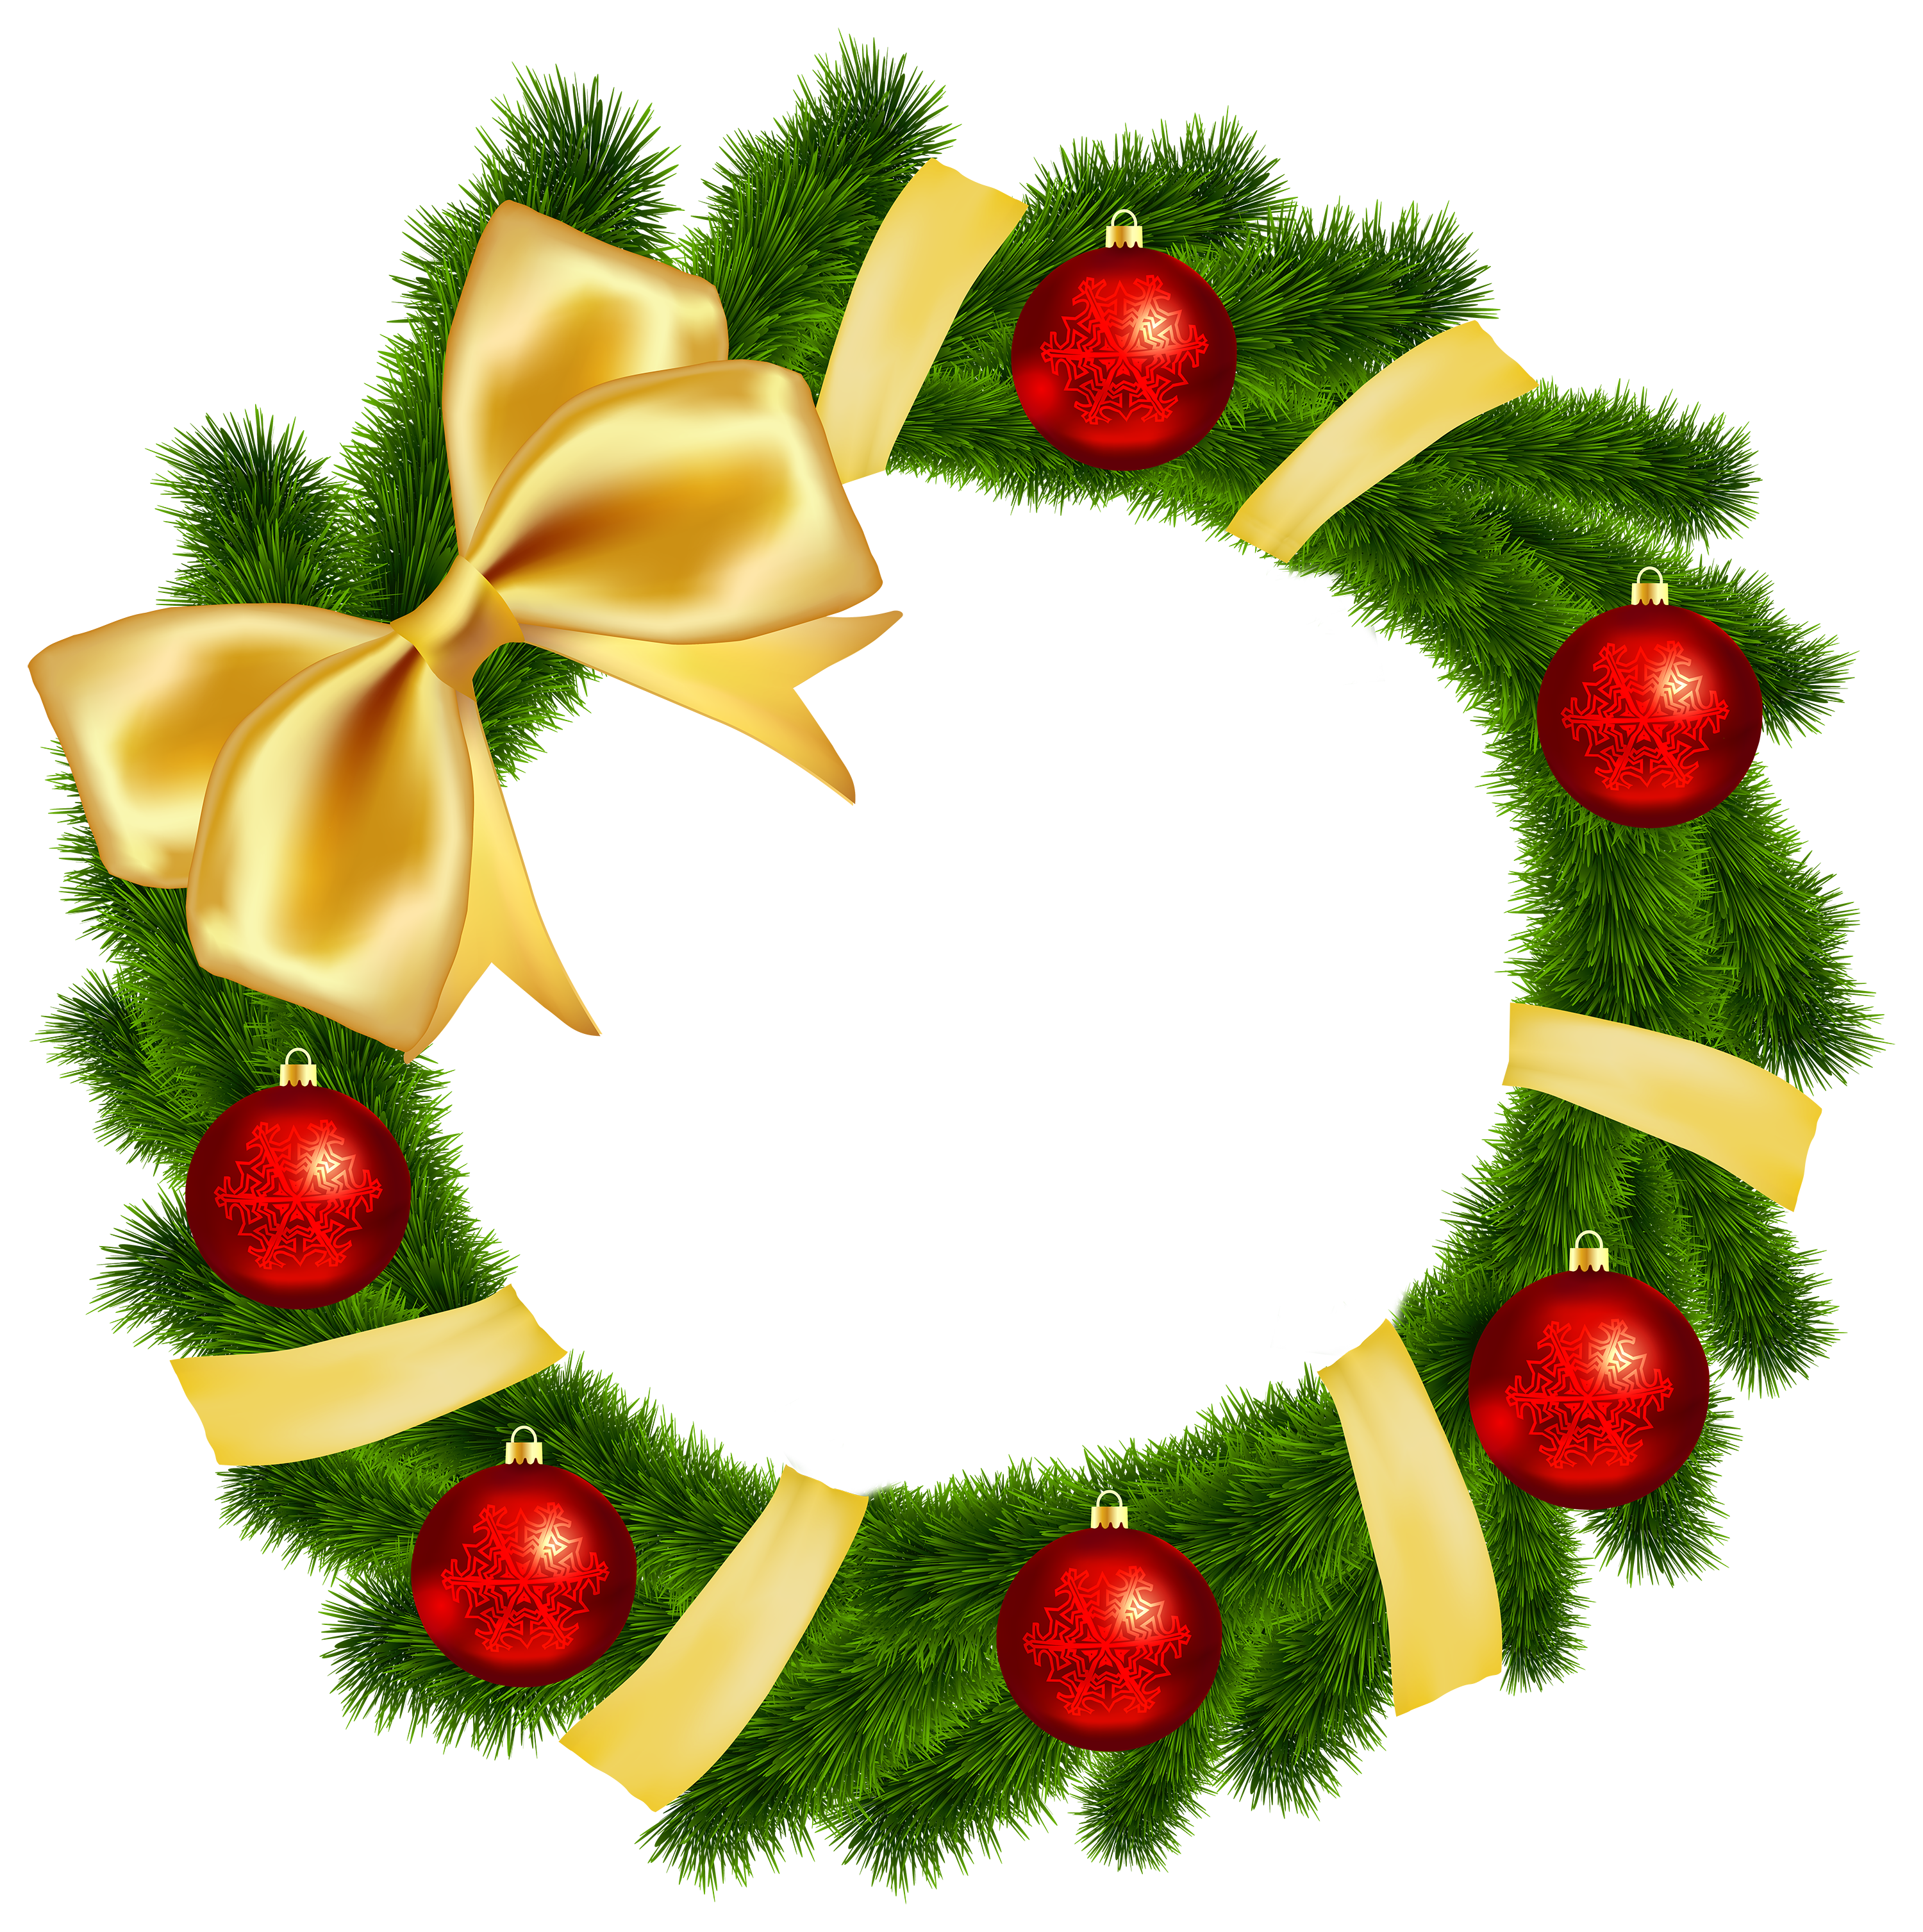 3000x3014 Free Png Hd Christmas Wreath Transparent Hd Christmas Wreath.png